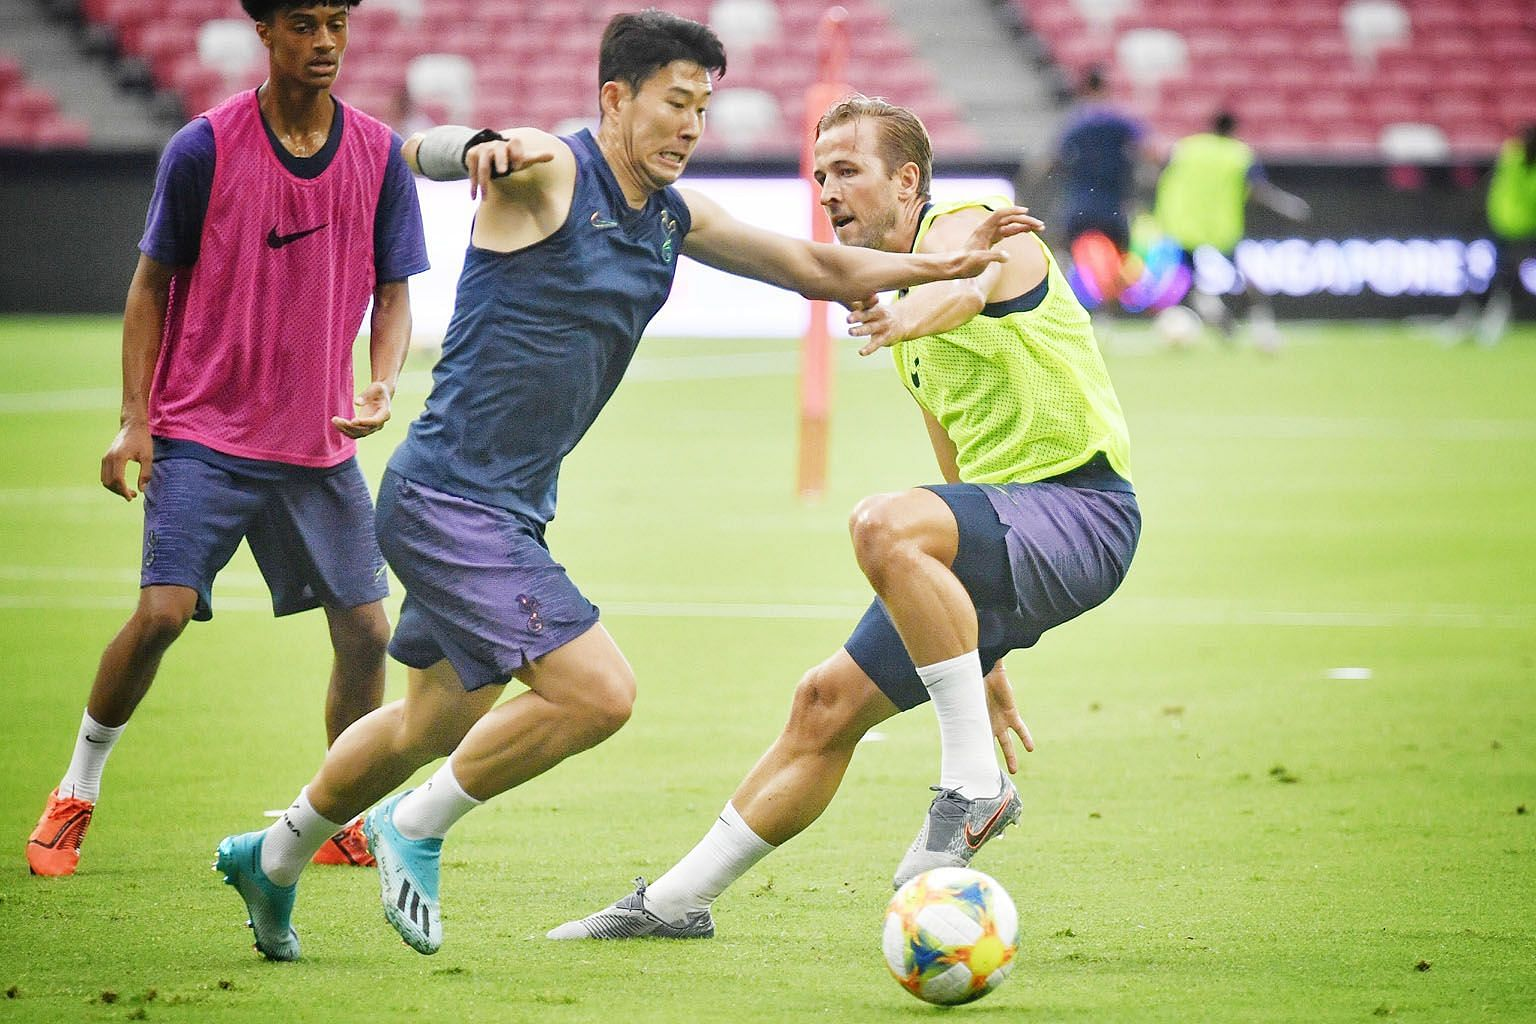 Tottenham captain Harry Kane challenging fellow forward Son Heung-min for the ball during their training session at the National Stadium yesterday. ST PHOTO: CHONG JUN LIANG